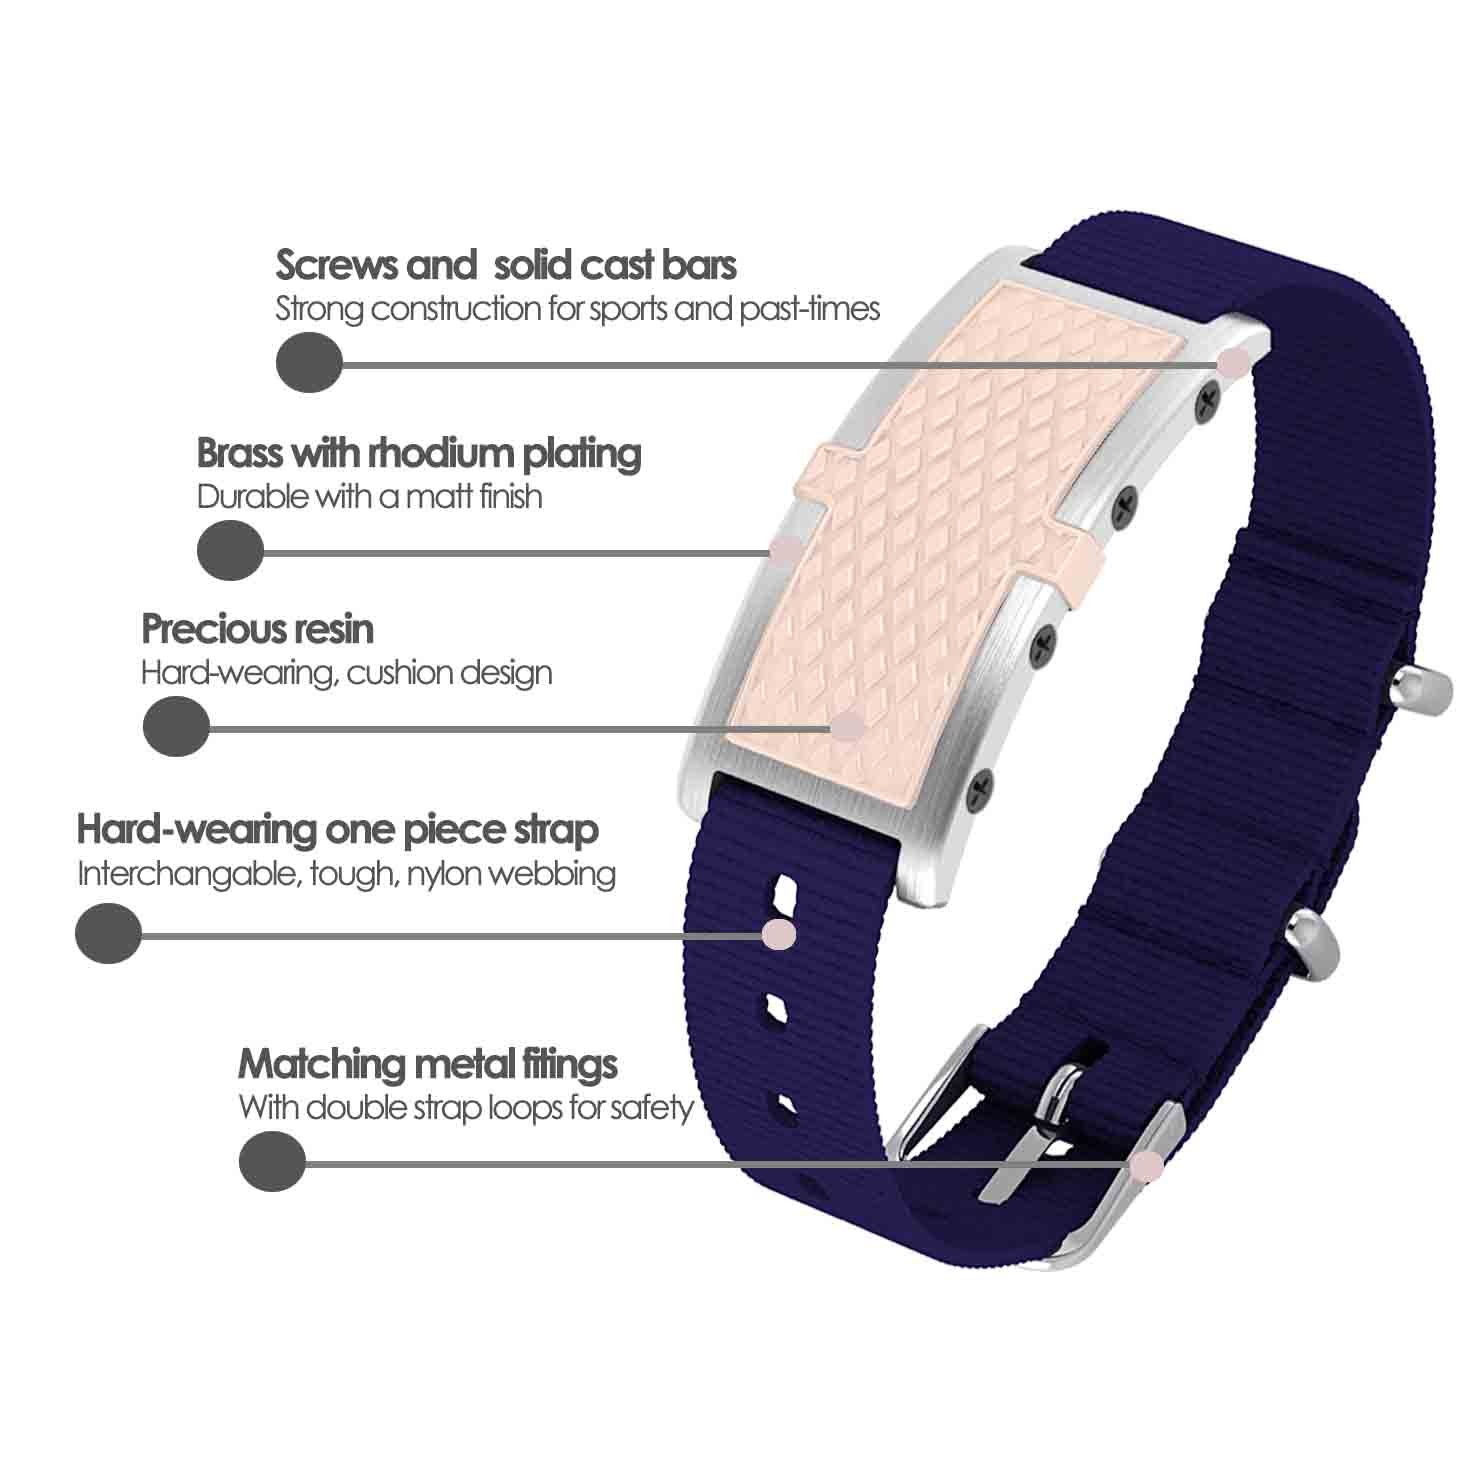 Oxford contactless payment wearable bracelet shell pink and blue nylon product details specification